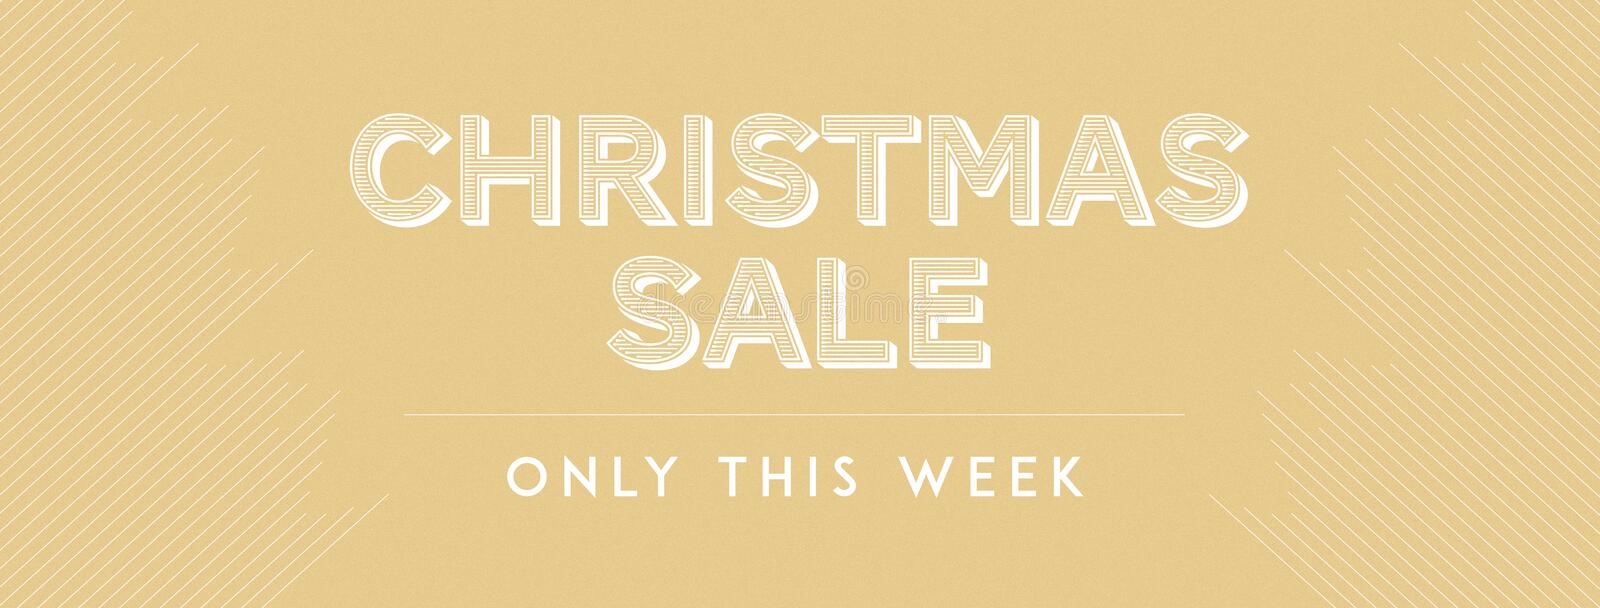 Christmas sale only this week royalty free stock images